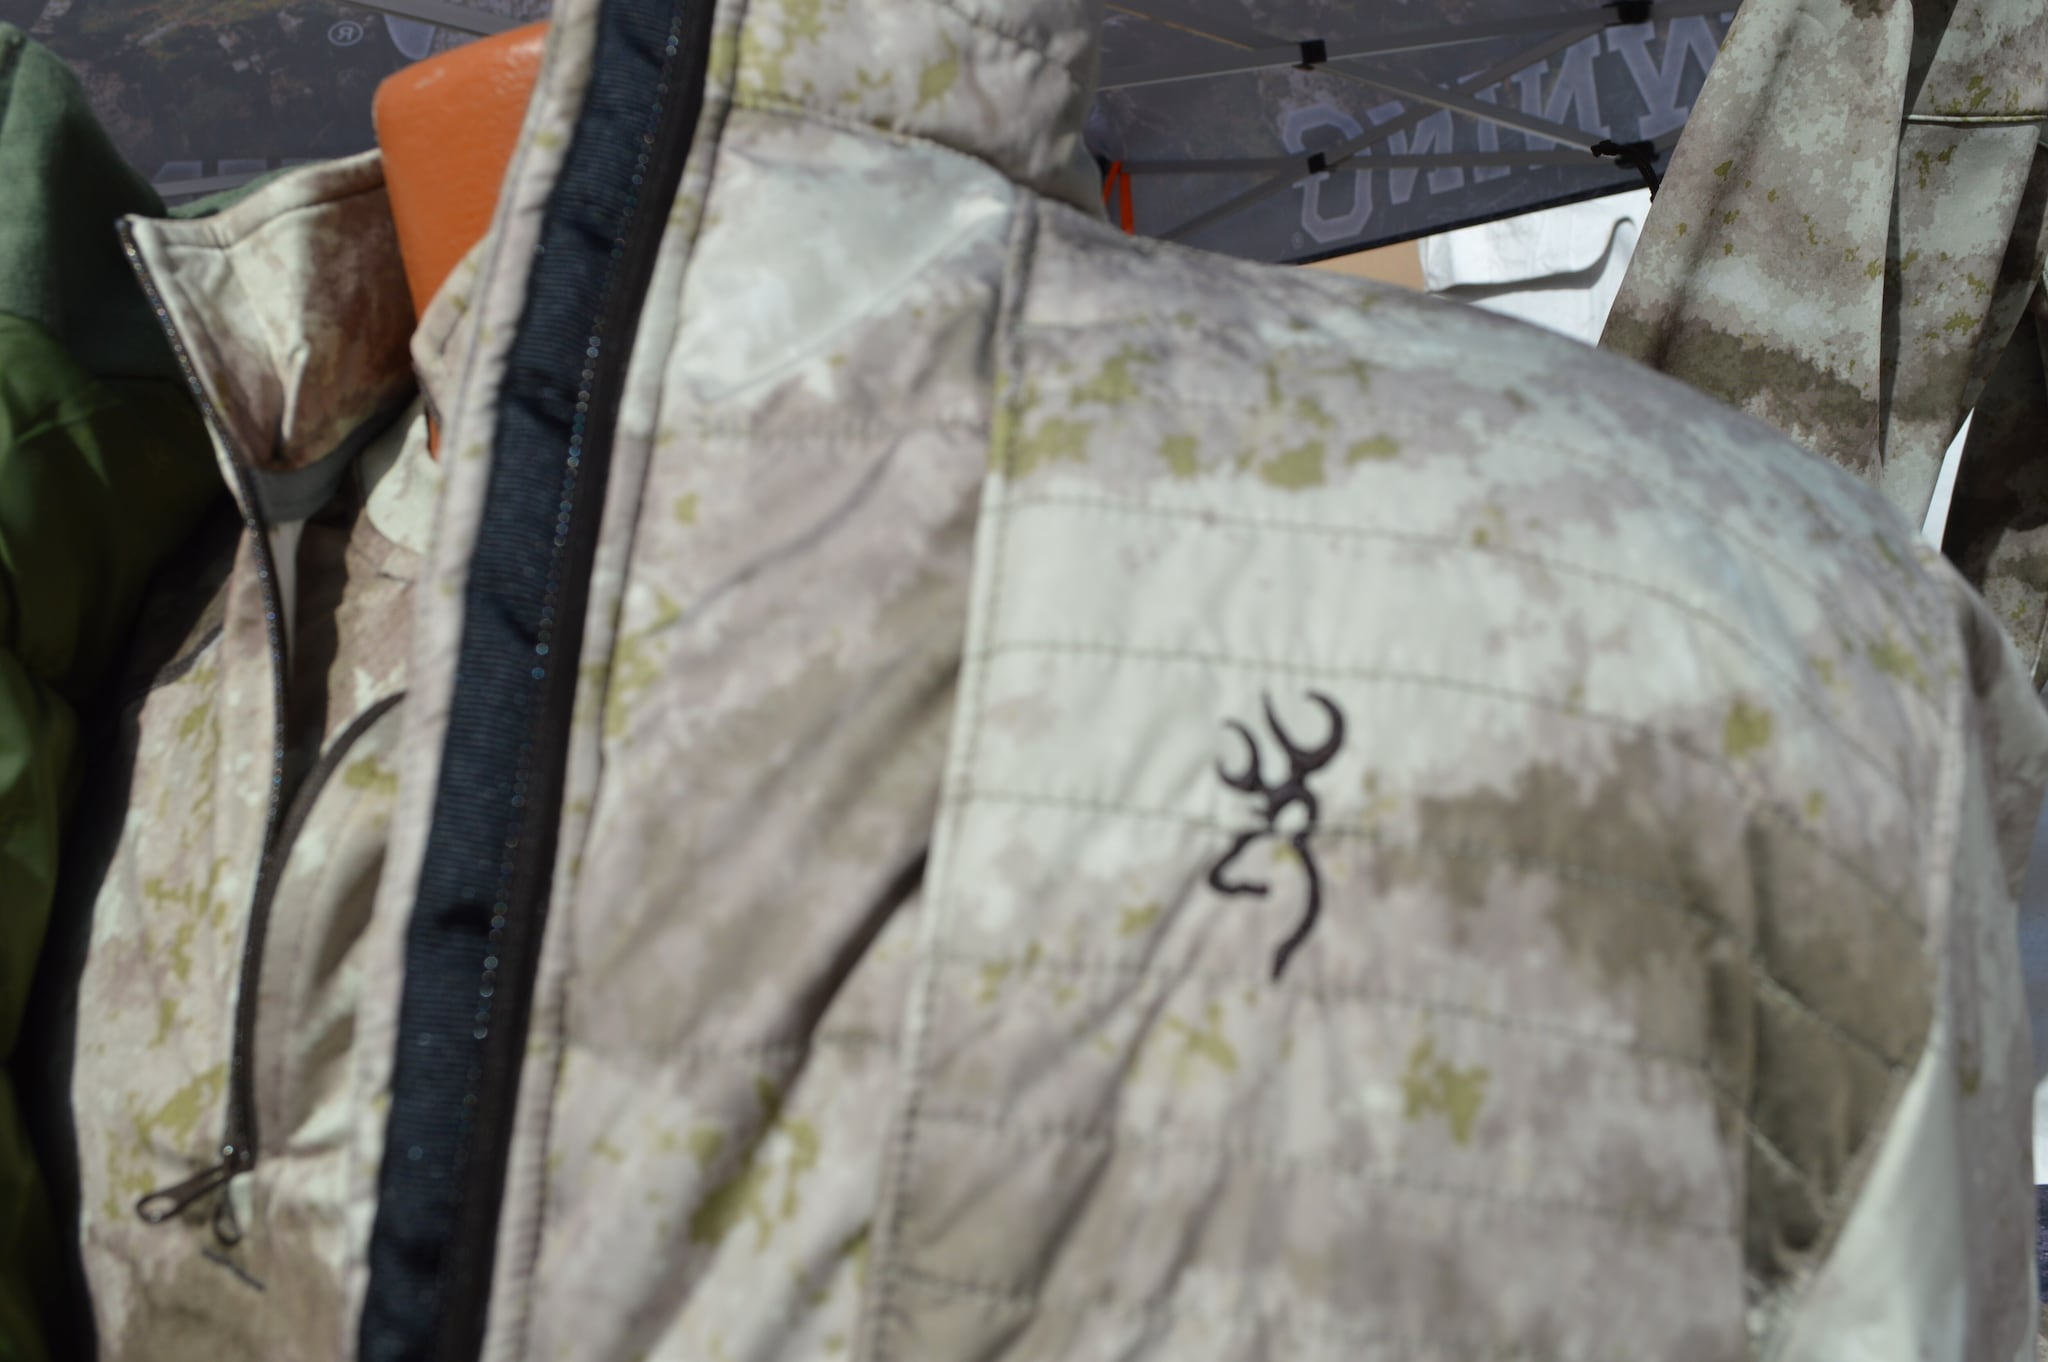 Detail of a Hell's Canyon Speed jacket in A-TACS A/U (Arid/Urban) camo. (Photo: Kristin Alberts)